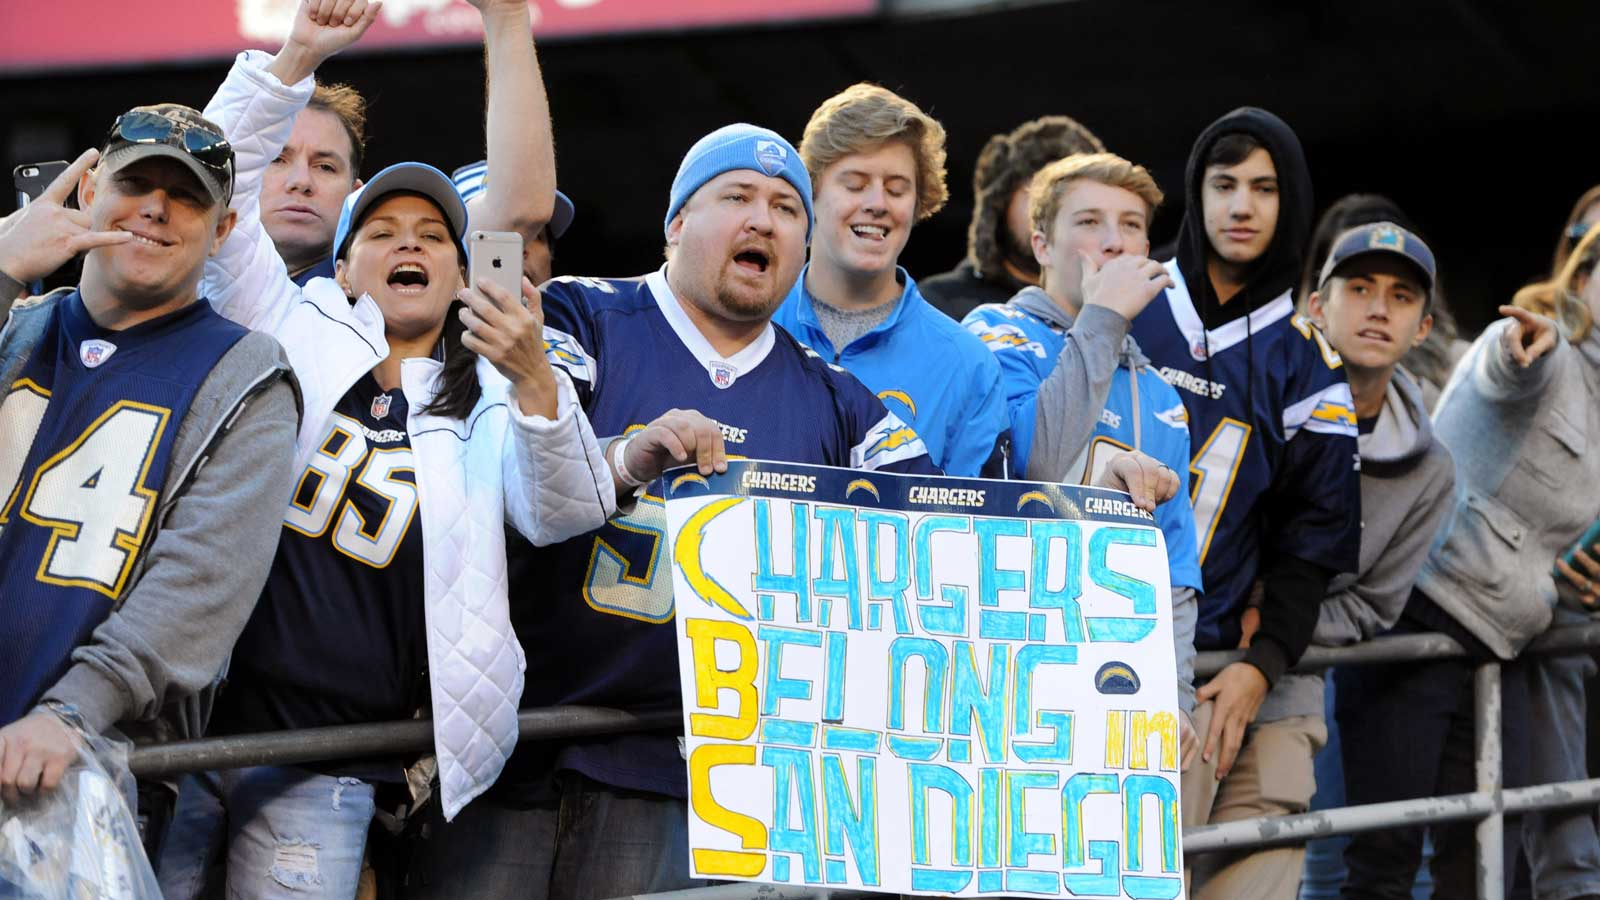 The Chargers leave San Diego for LA Um, welcome back?